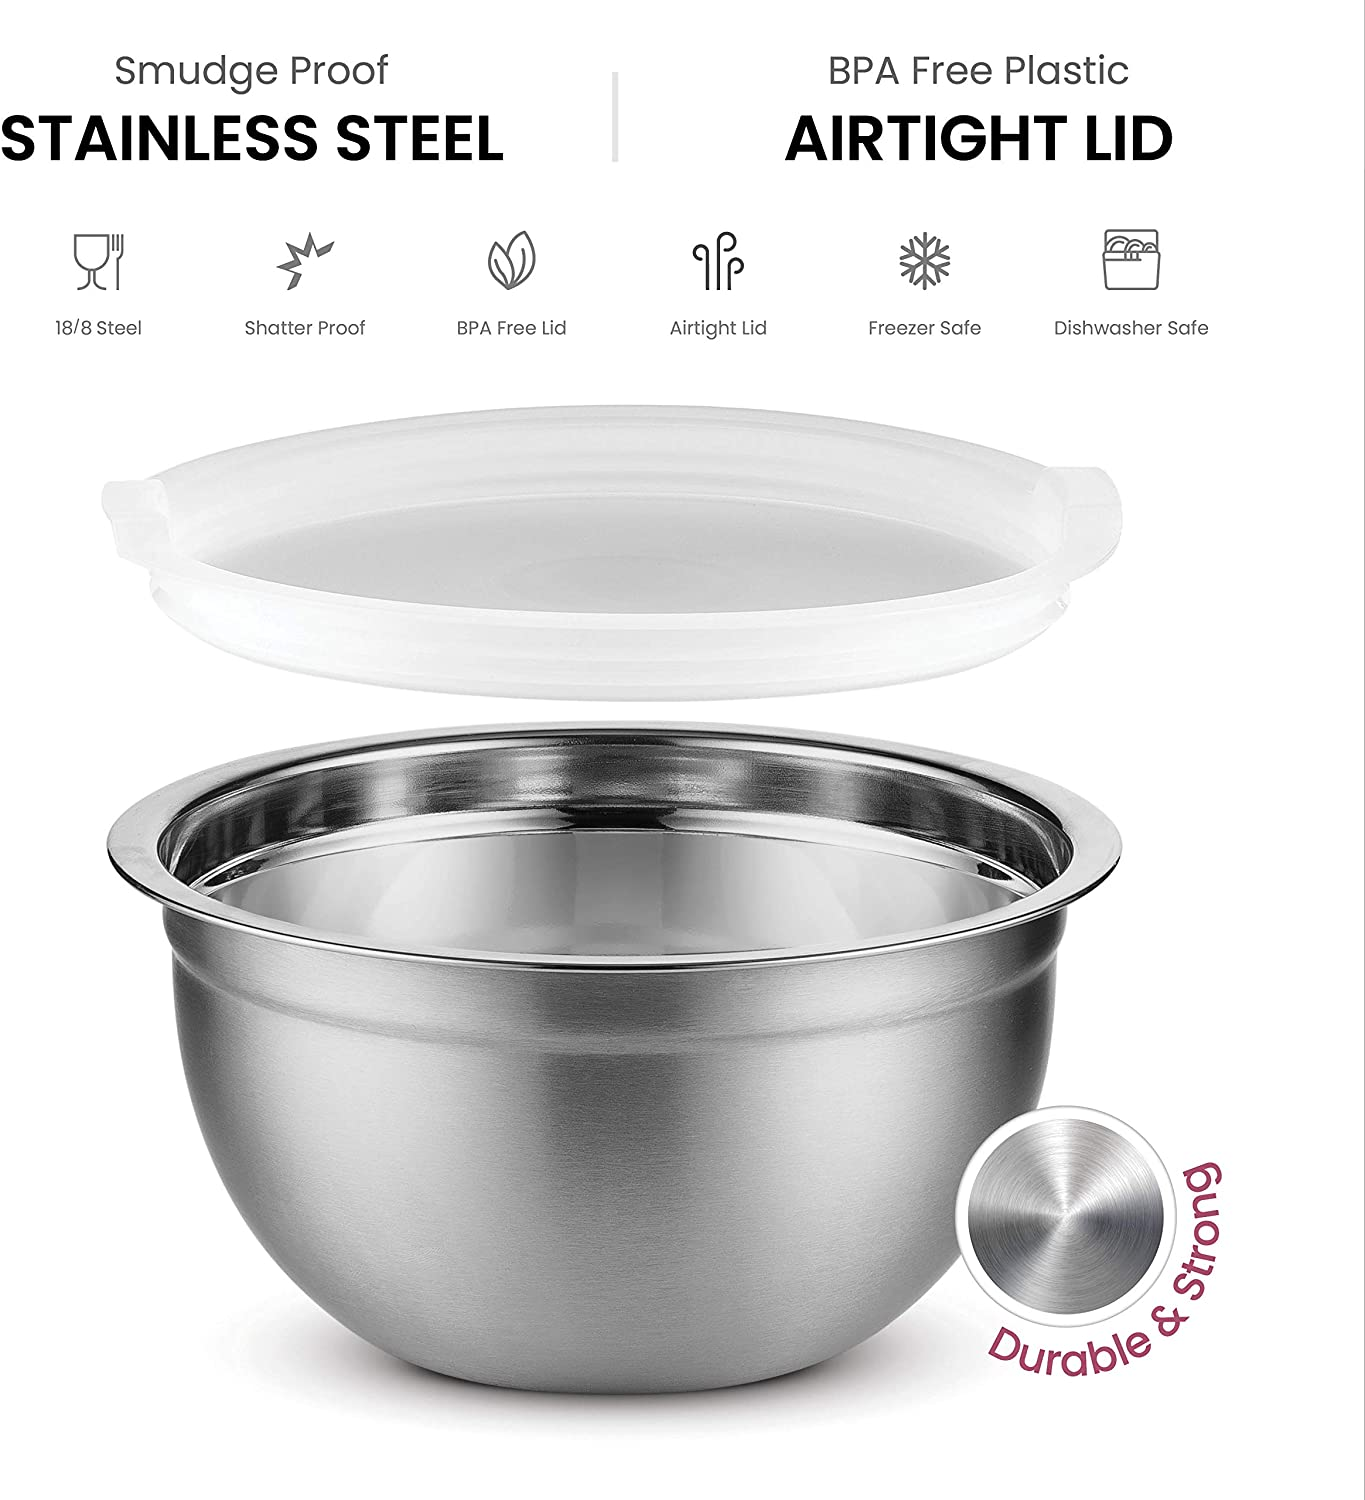 Premium Stainless Steel Mixing Bowls with Airtight Lids (Set of 5) Easy Grip & Stability Design Mixing Bowl Set For Cooking, Baking & Food Storage